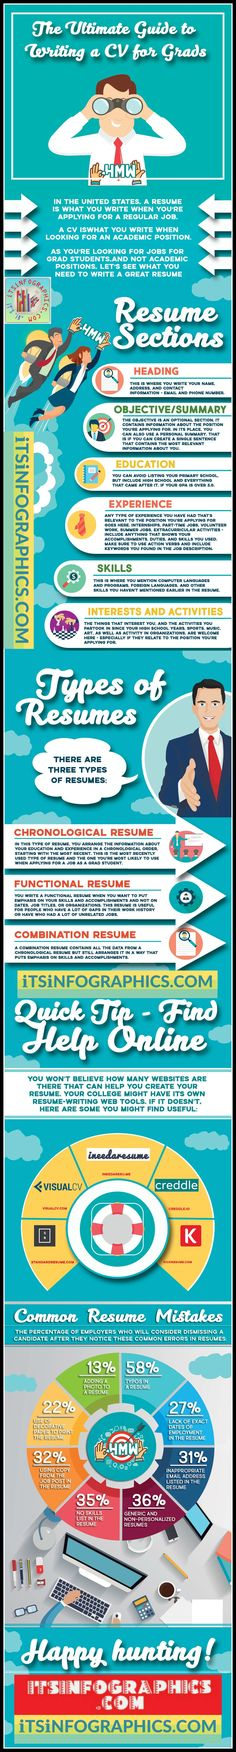 standaard cv Sample Template Example ofBeautiful Excellent - common resume mistakes